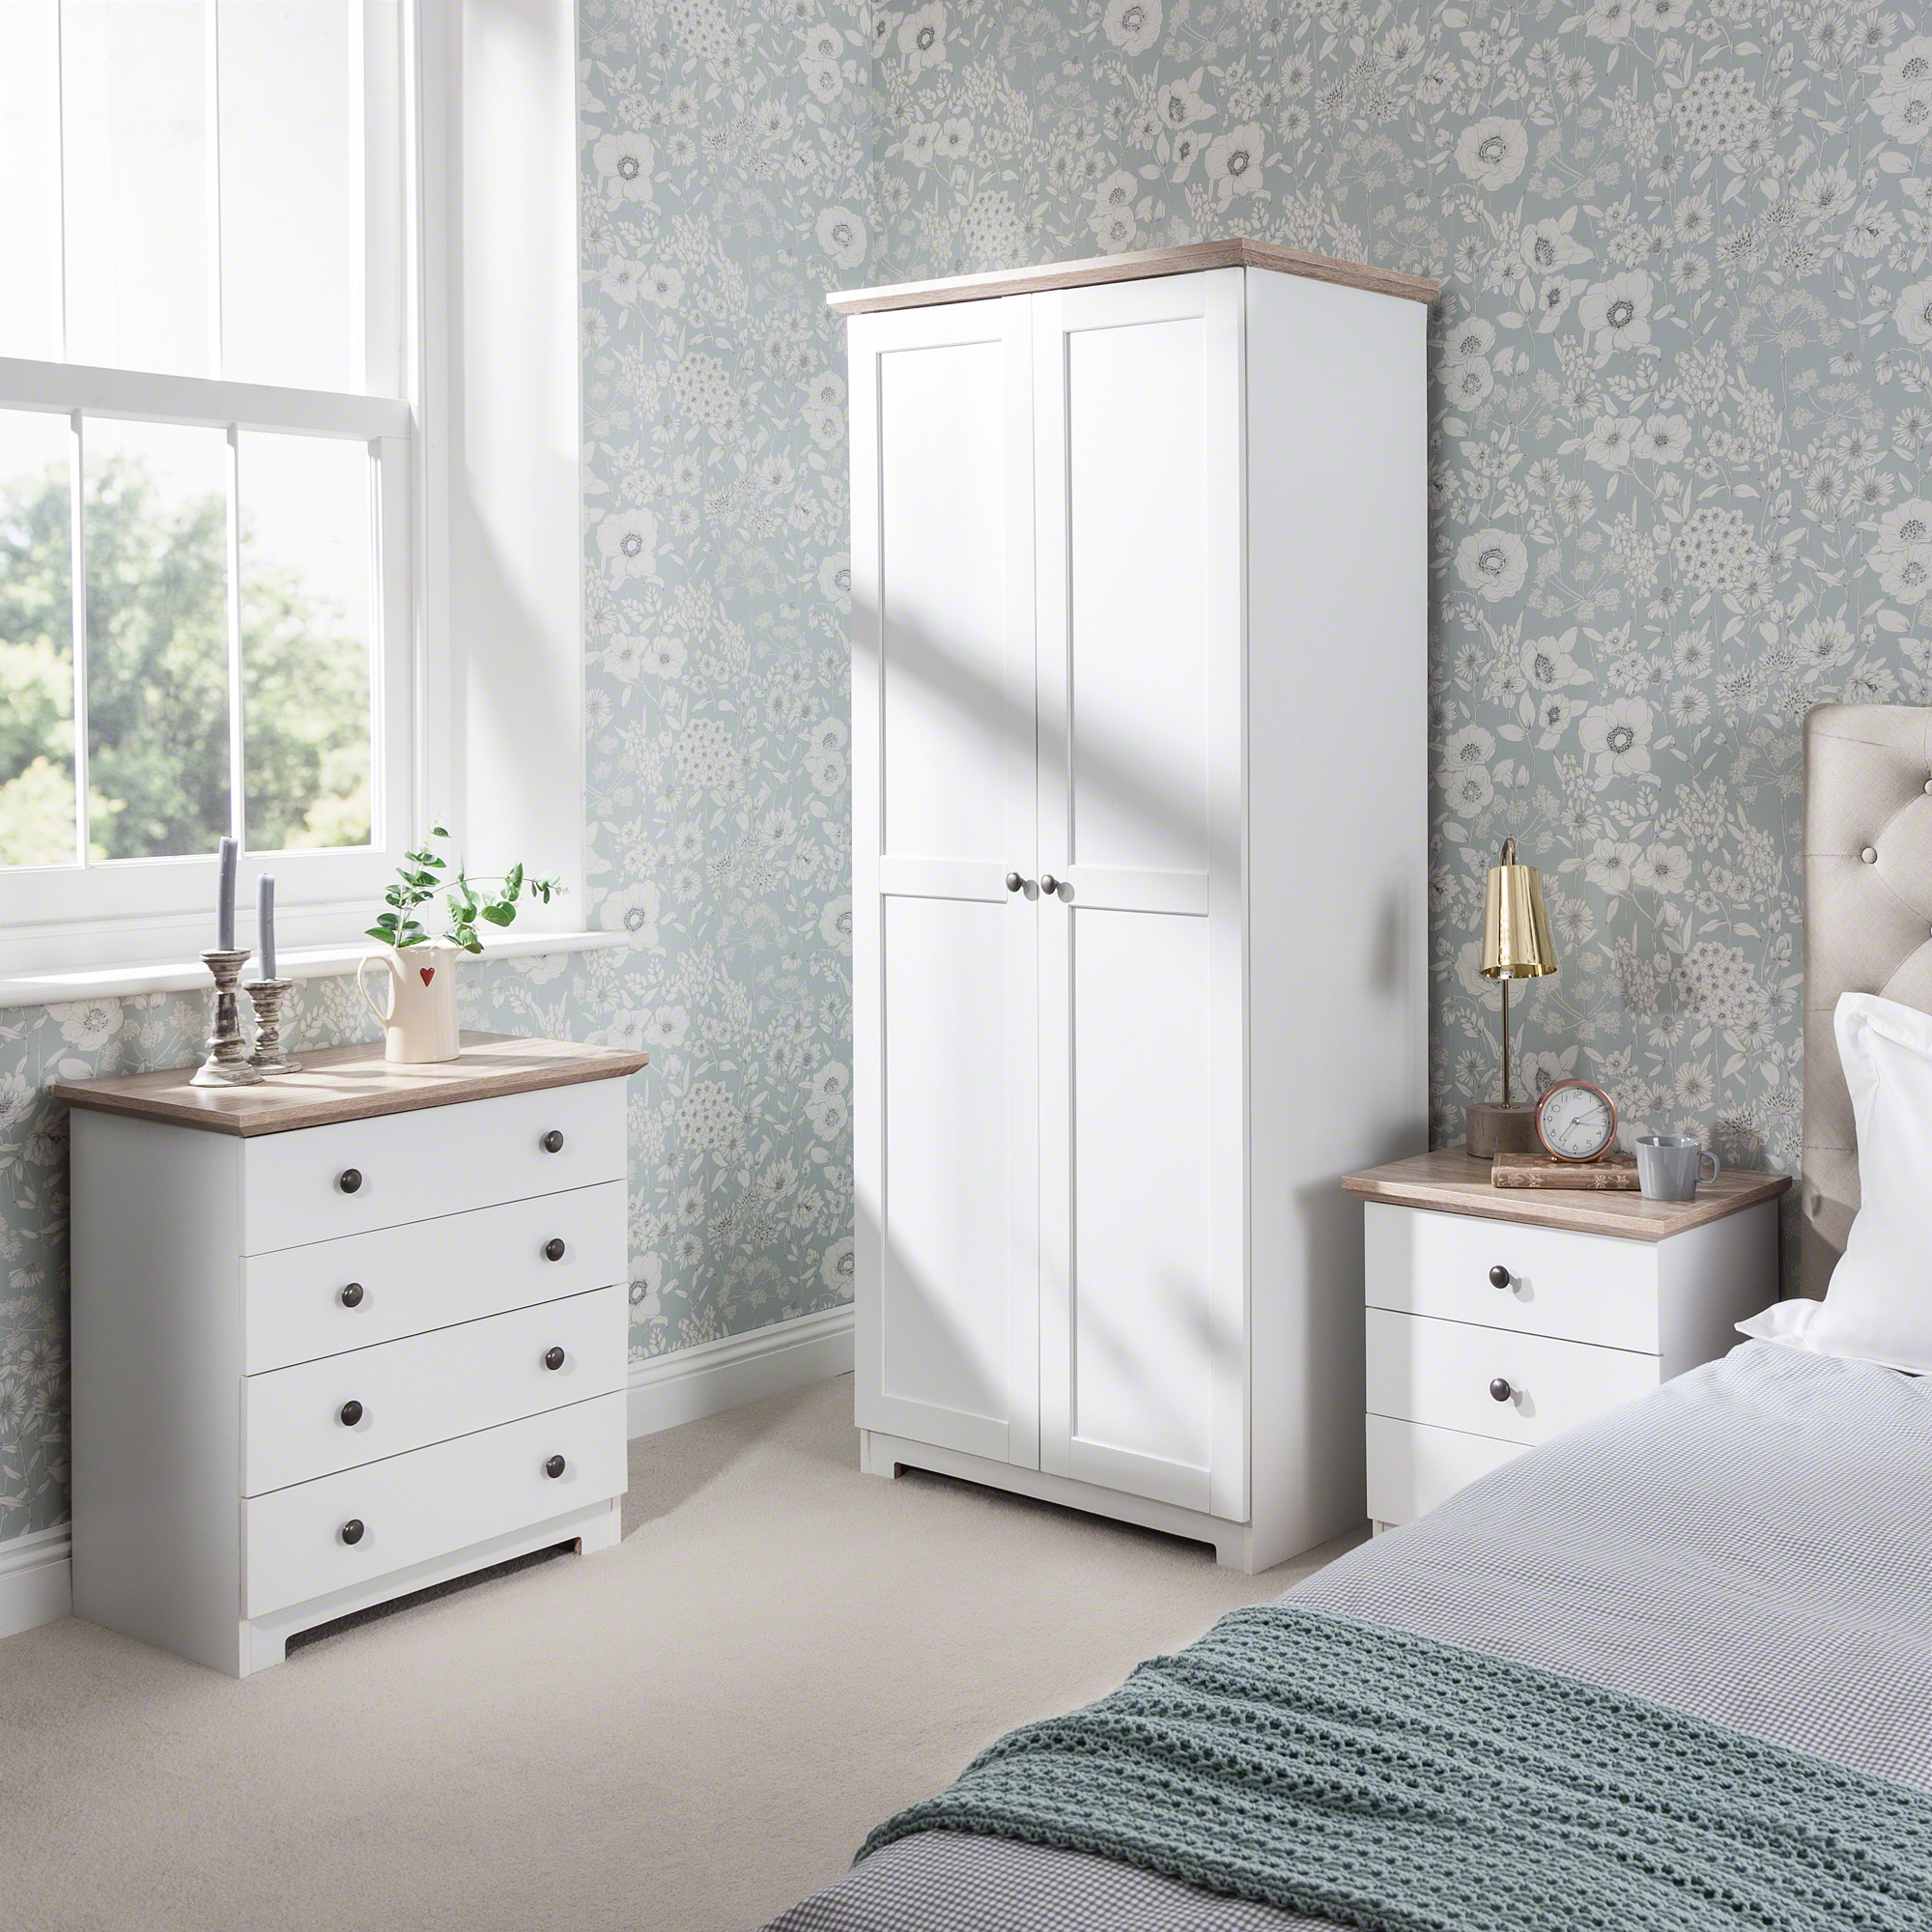 Details about Bedroom Furniture Set includes wardrobe, 4 drawer chest,  bedside table in White